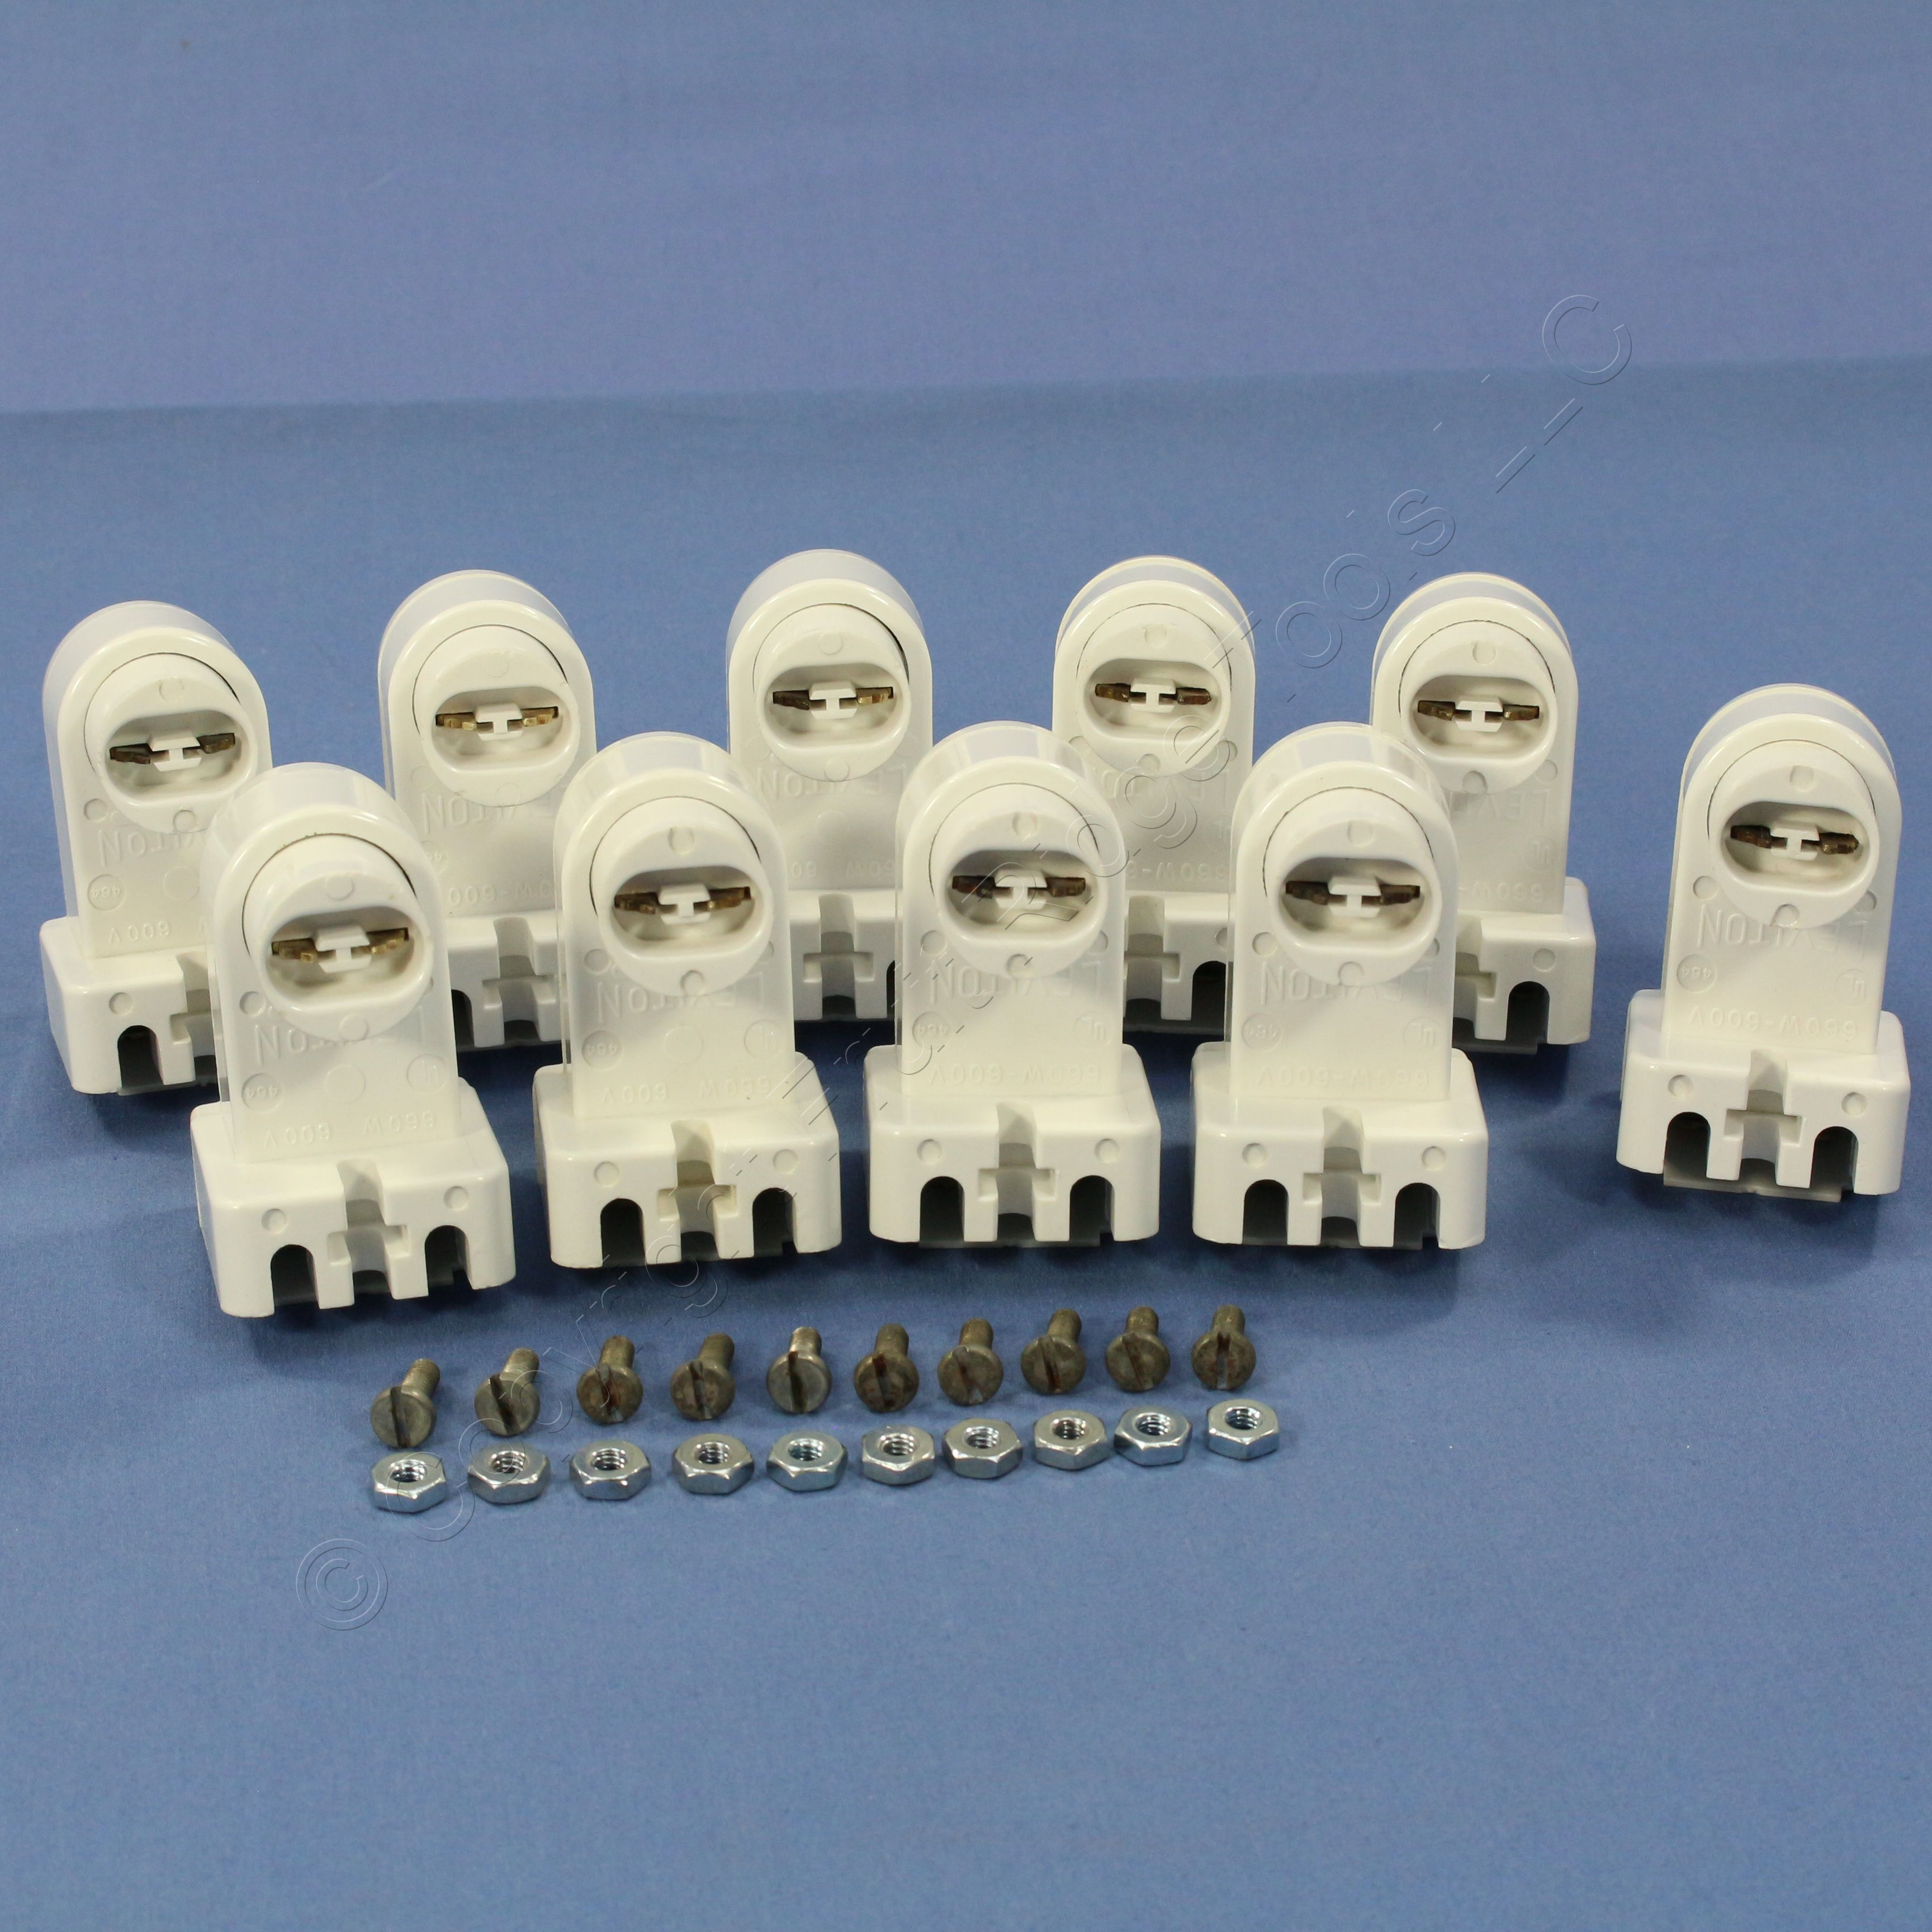 10 Leviton Fluorescent Lamp Socket 464 Recessed Contact HO New Old Stock